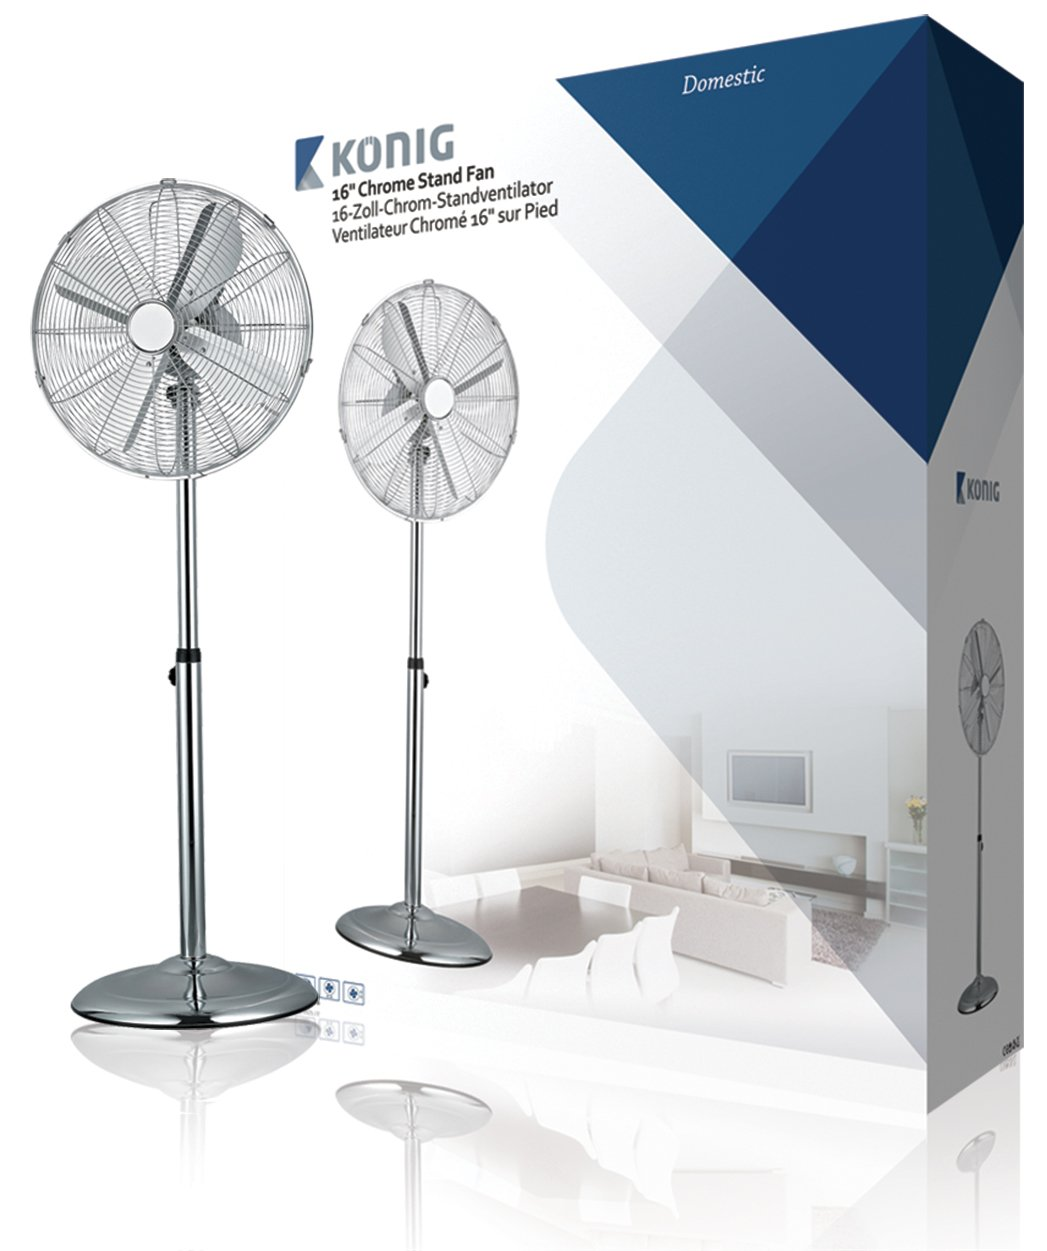 HQ KN-MSF16UK Chrome Metal Finish 3 speed Oscillating Pedestal Fan With Tilt Able Head, 16-Inch Nedis